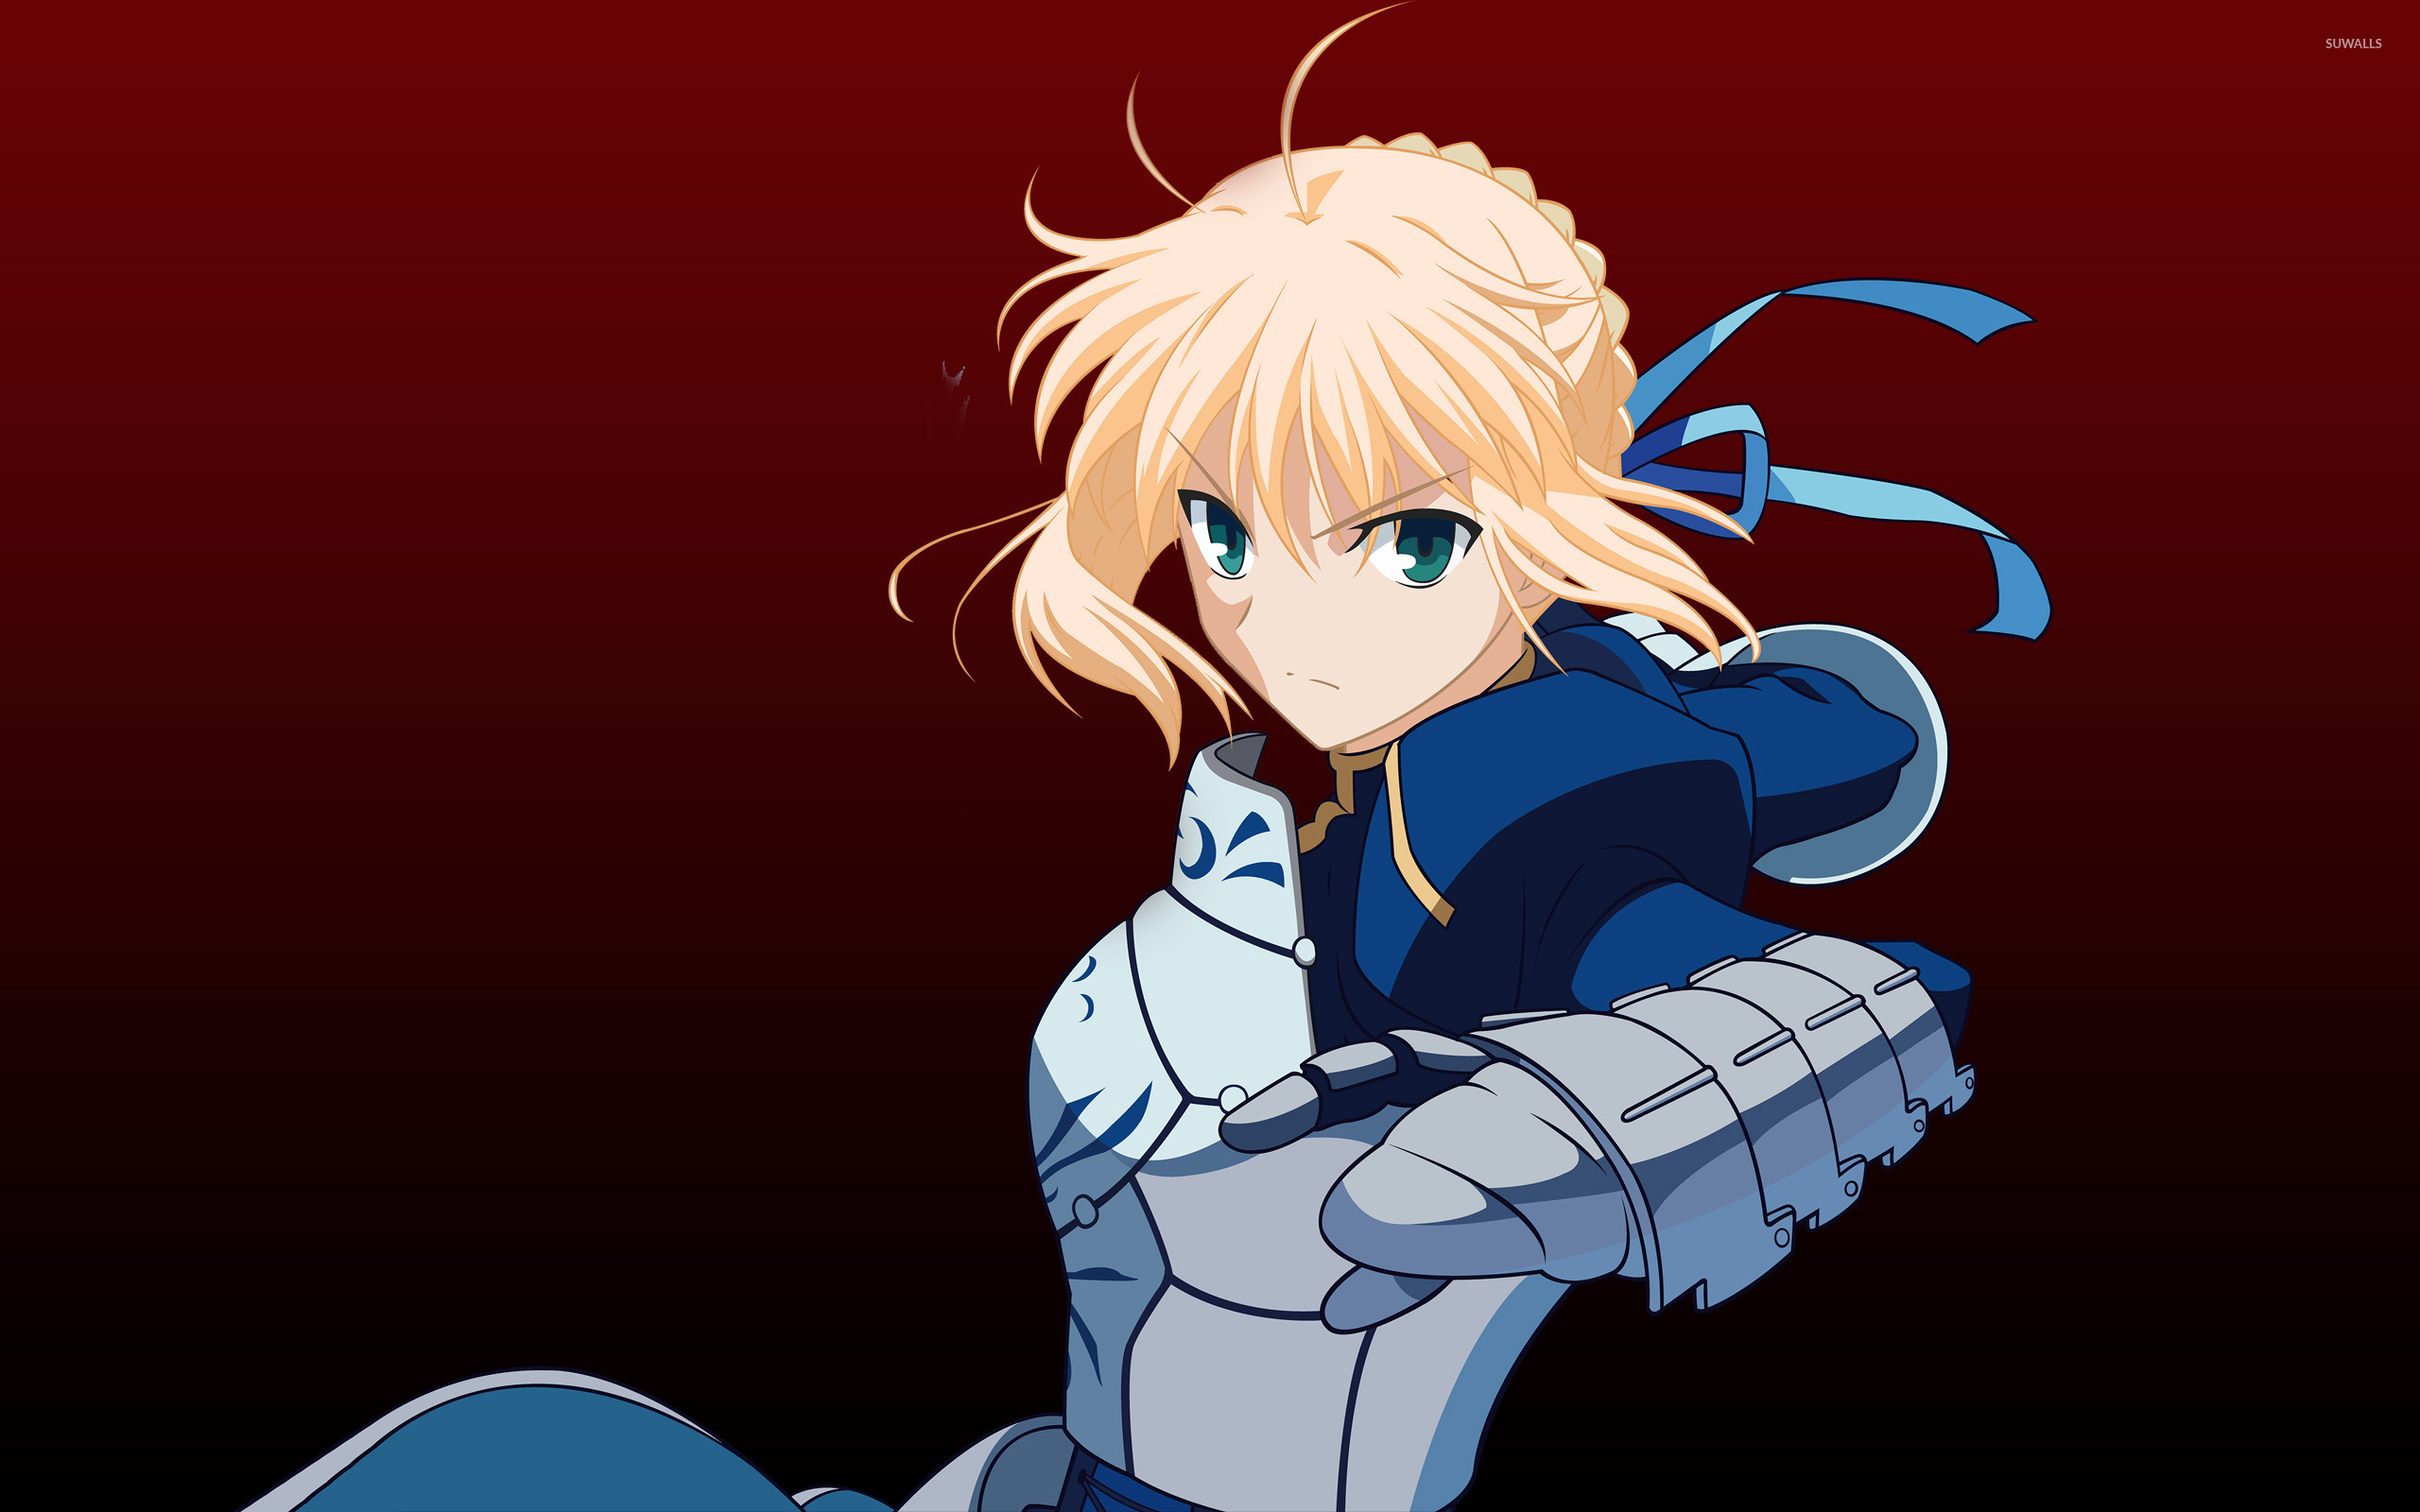 Saber Fate Stay Night 3 Wallpaper Anime Wallpapers 9463